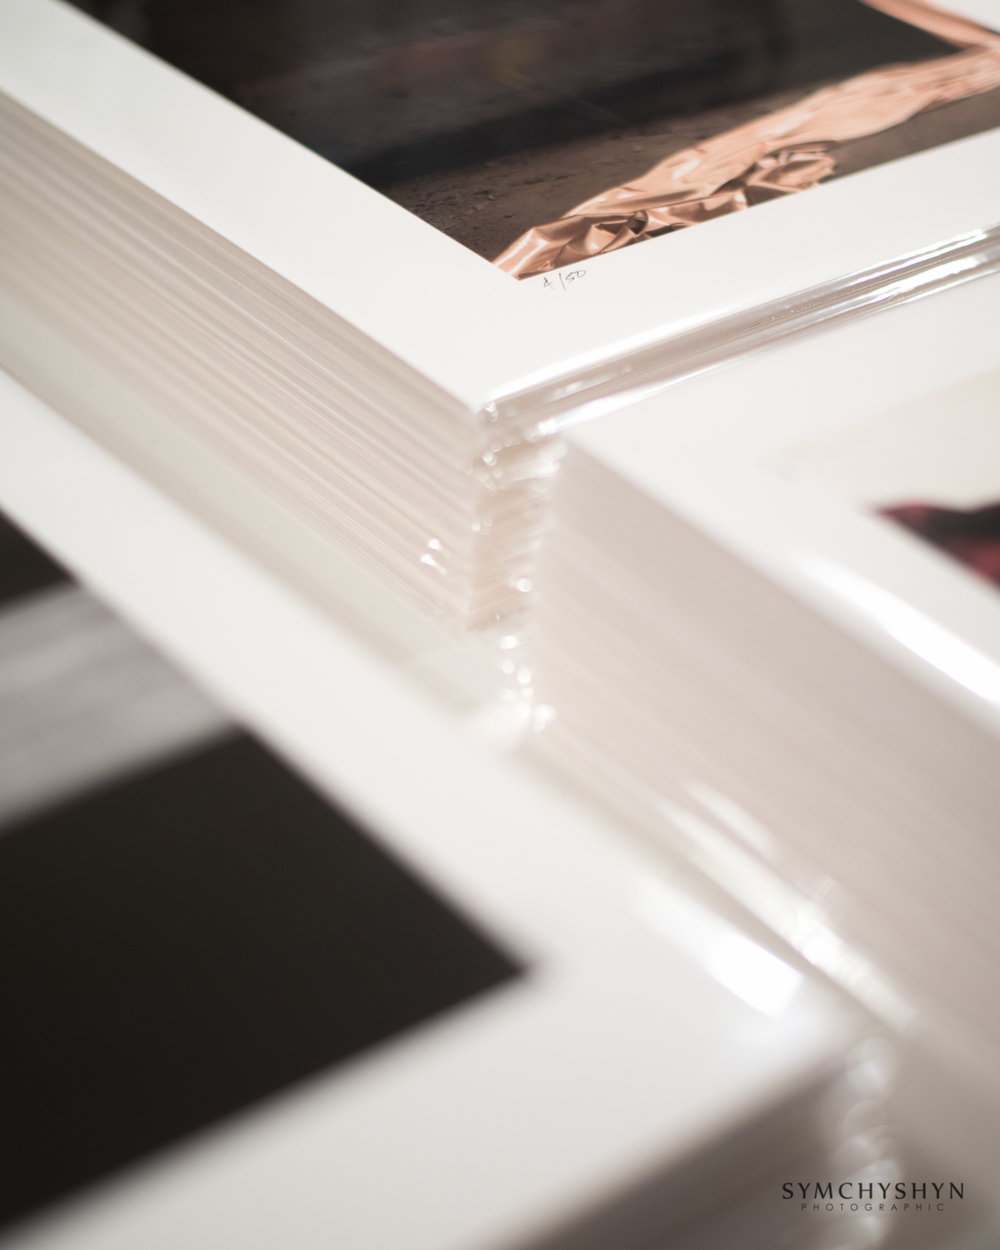 Here's stacks of completed images following signing and packaging.